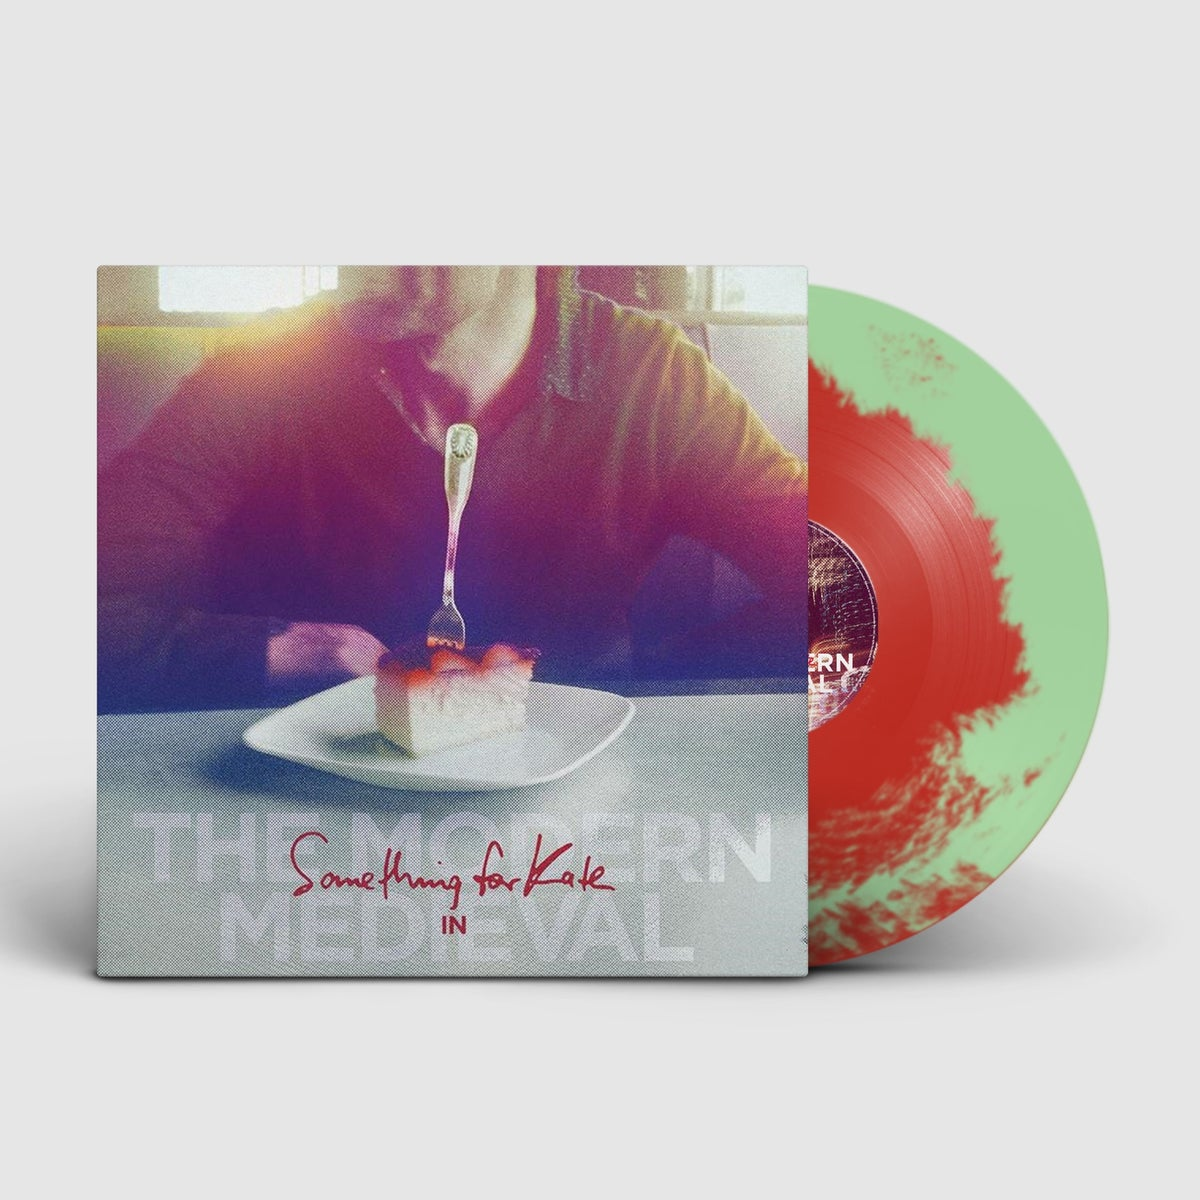 Image of 'The Modern Medieval' mint green & red vinyl - very limited edition